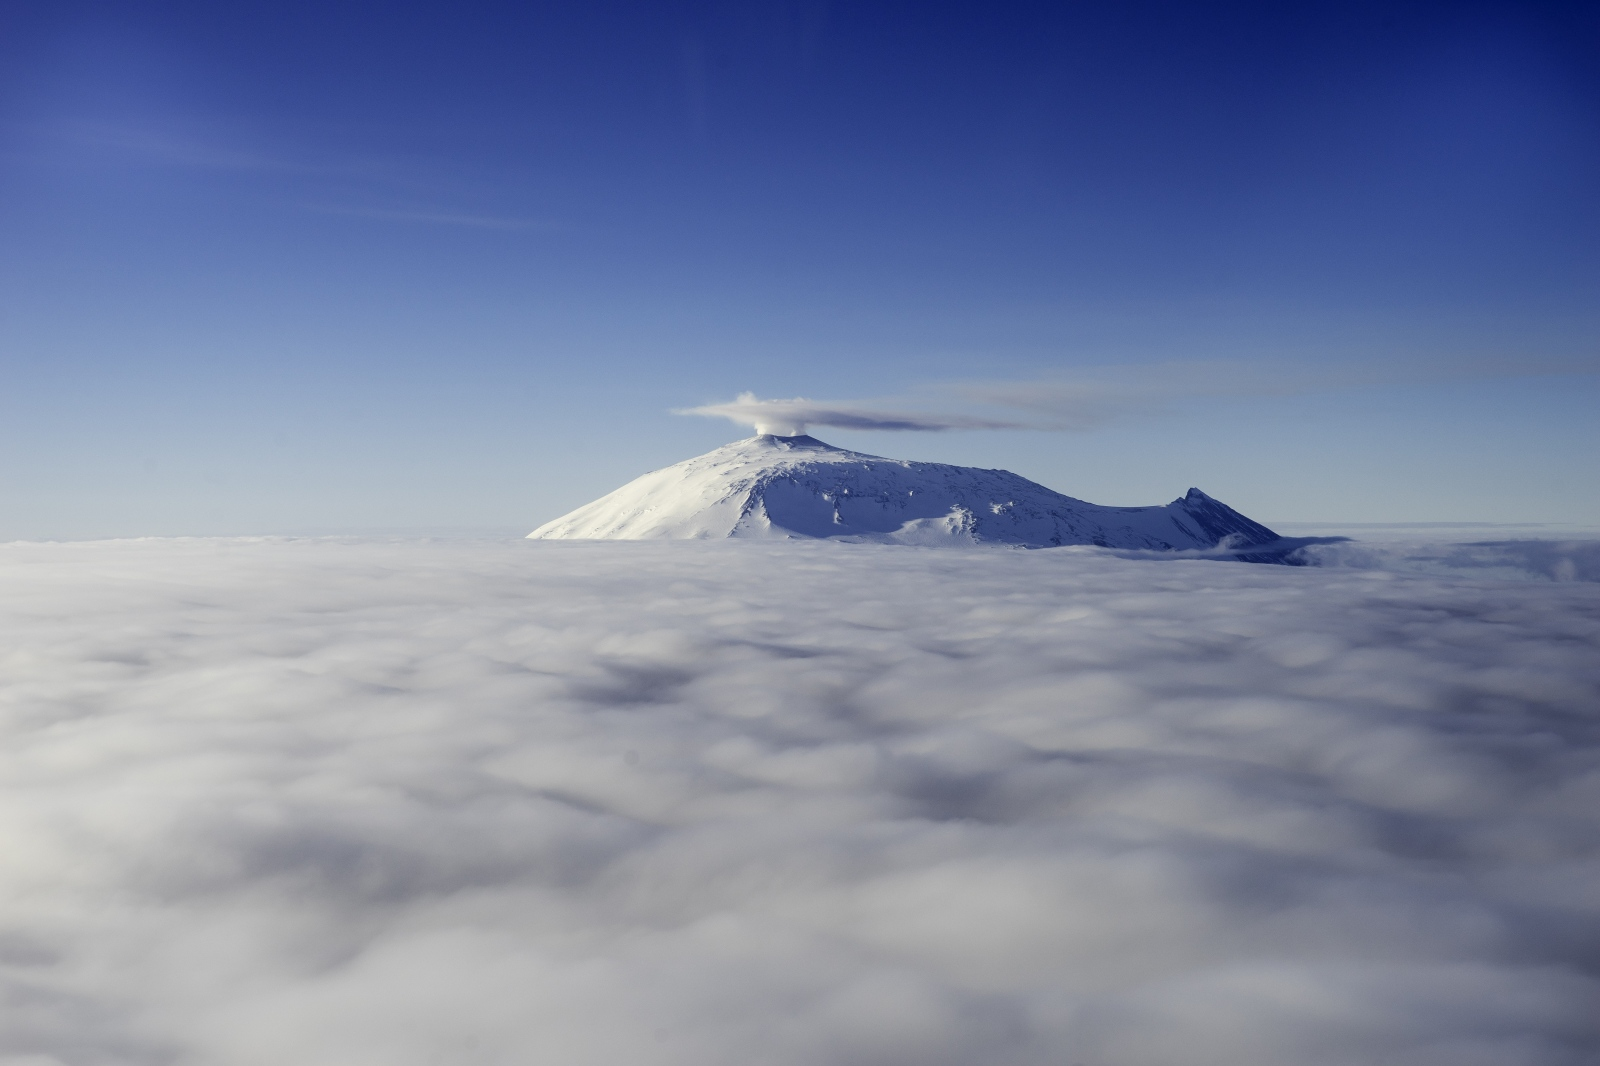 10 December 2016. Mt Erebus emerging from the clouds. Viewed from Bell 212 helicopter at 10,000 feet elevation. Erebus is one of only a handful of active volcanos in the world which has an open lava lake. For this reason, and its relative ease of access, due to American and New Zealand science bases nearby, it is one of the most studied volcanos of its kind. The steam coming from its main crater is released 24/7/365. But only on days when the relative humidity and winds are correct, does it appear visible in such a way.